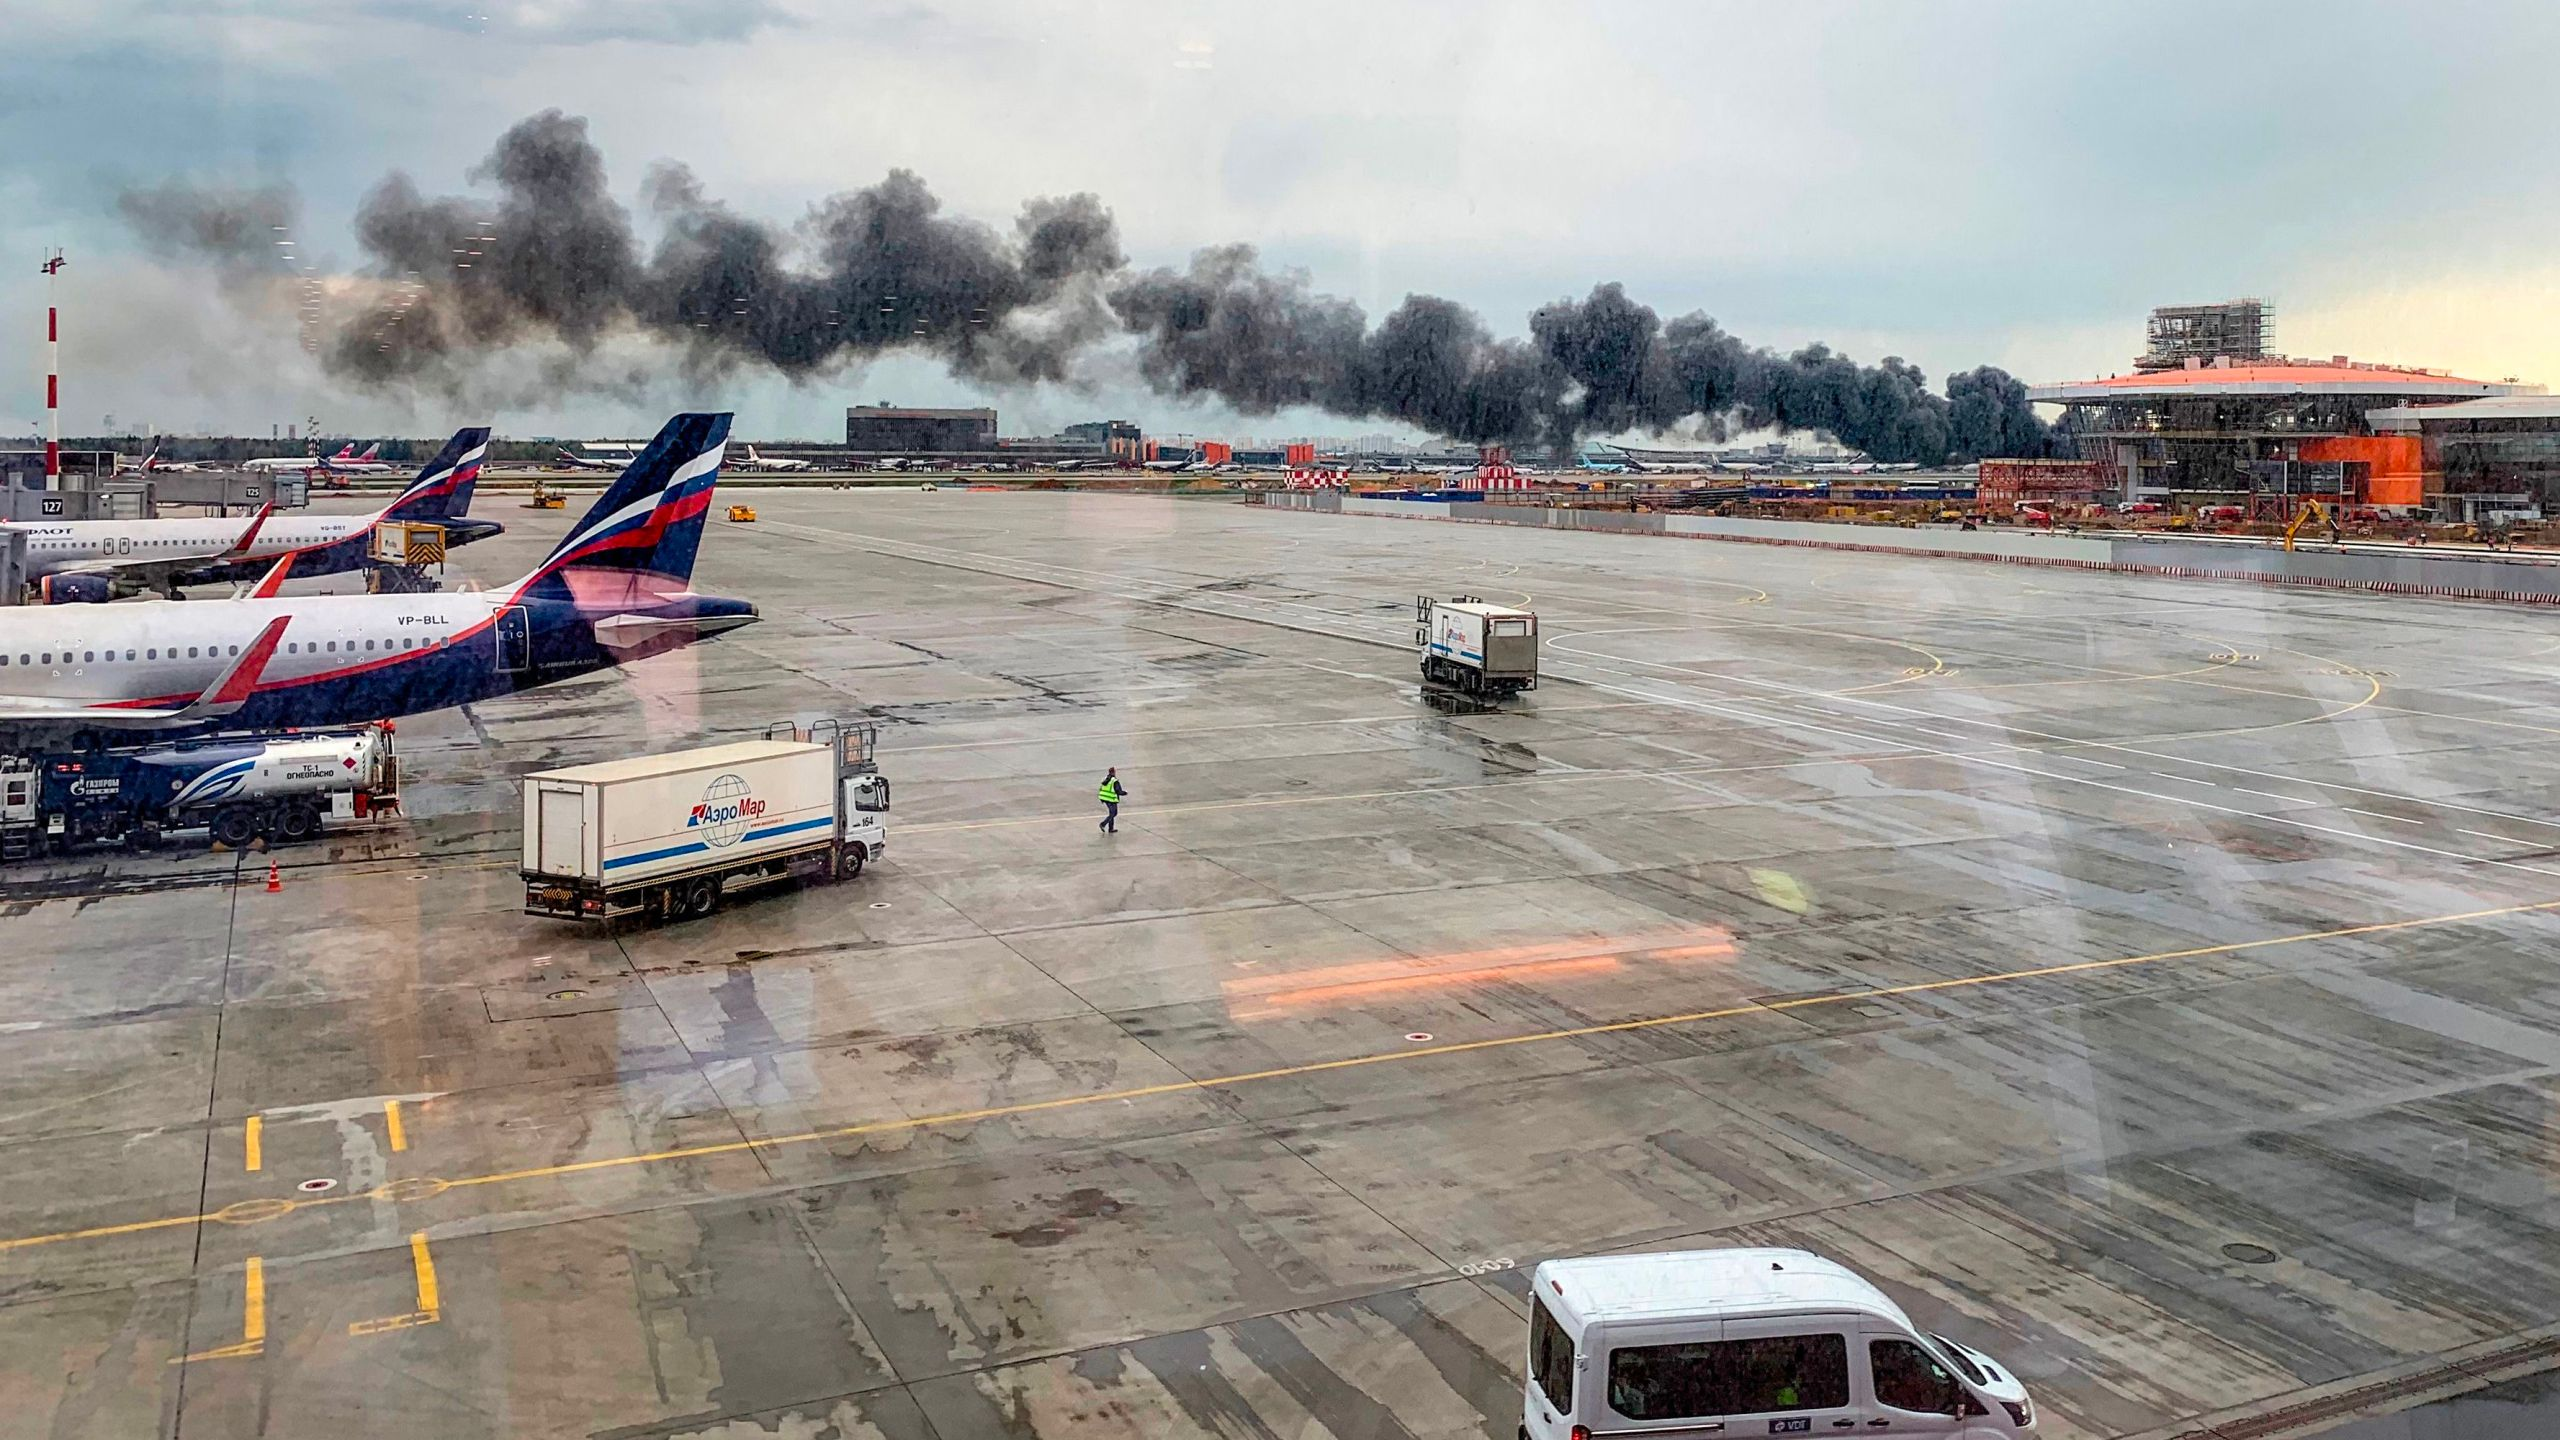 A picture taken on May 5, 2019, shows a fire of a Russian-made Superjet-100 at Sheremetyevo airport outside Moscow. (Credit: VIKTOR MARCHUKAITES/AFP/Getty Images)